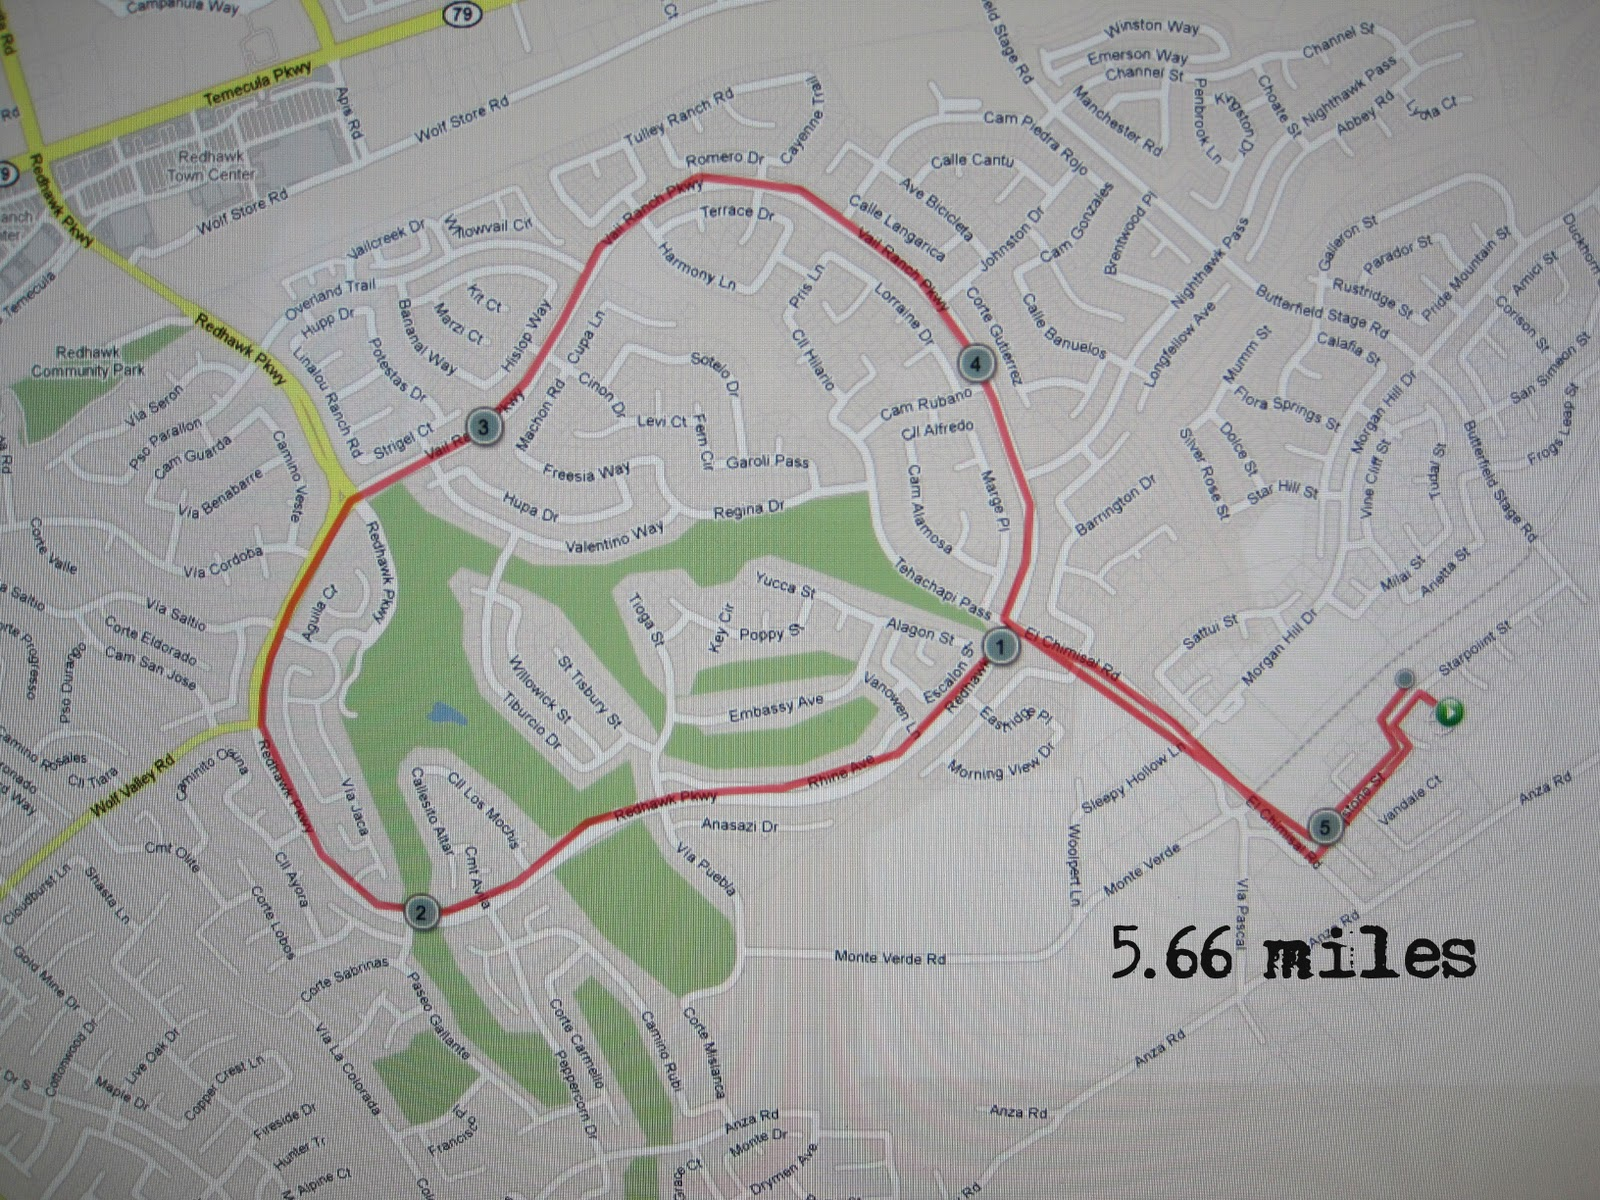 potd: 82: map my run on map my distance, mapping a route, map my run, plan my route, map sf 5k route, map my drives, map my trip, map my city, map of my land, map my state, map my place, map my name, map out a route trip, chart my route,